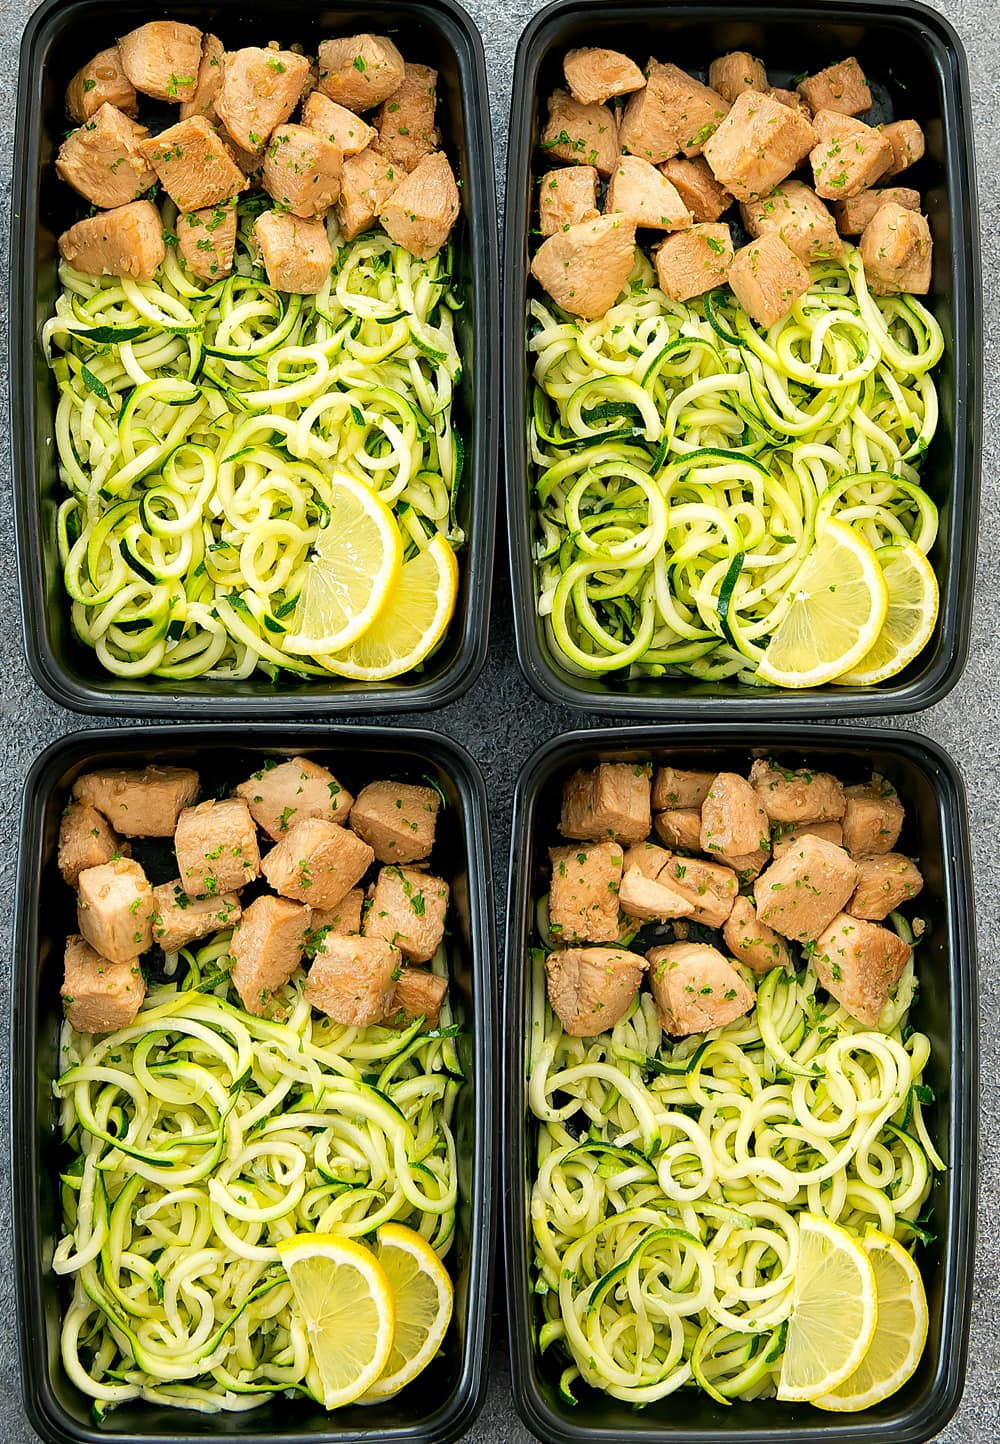 Lemon Garlic Chicken with Zucchini Noodles Meal Prep